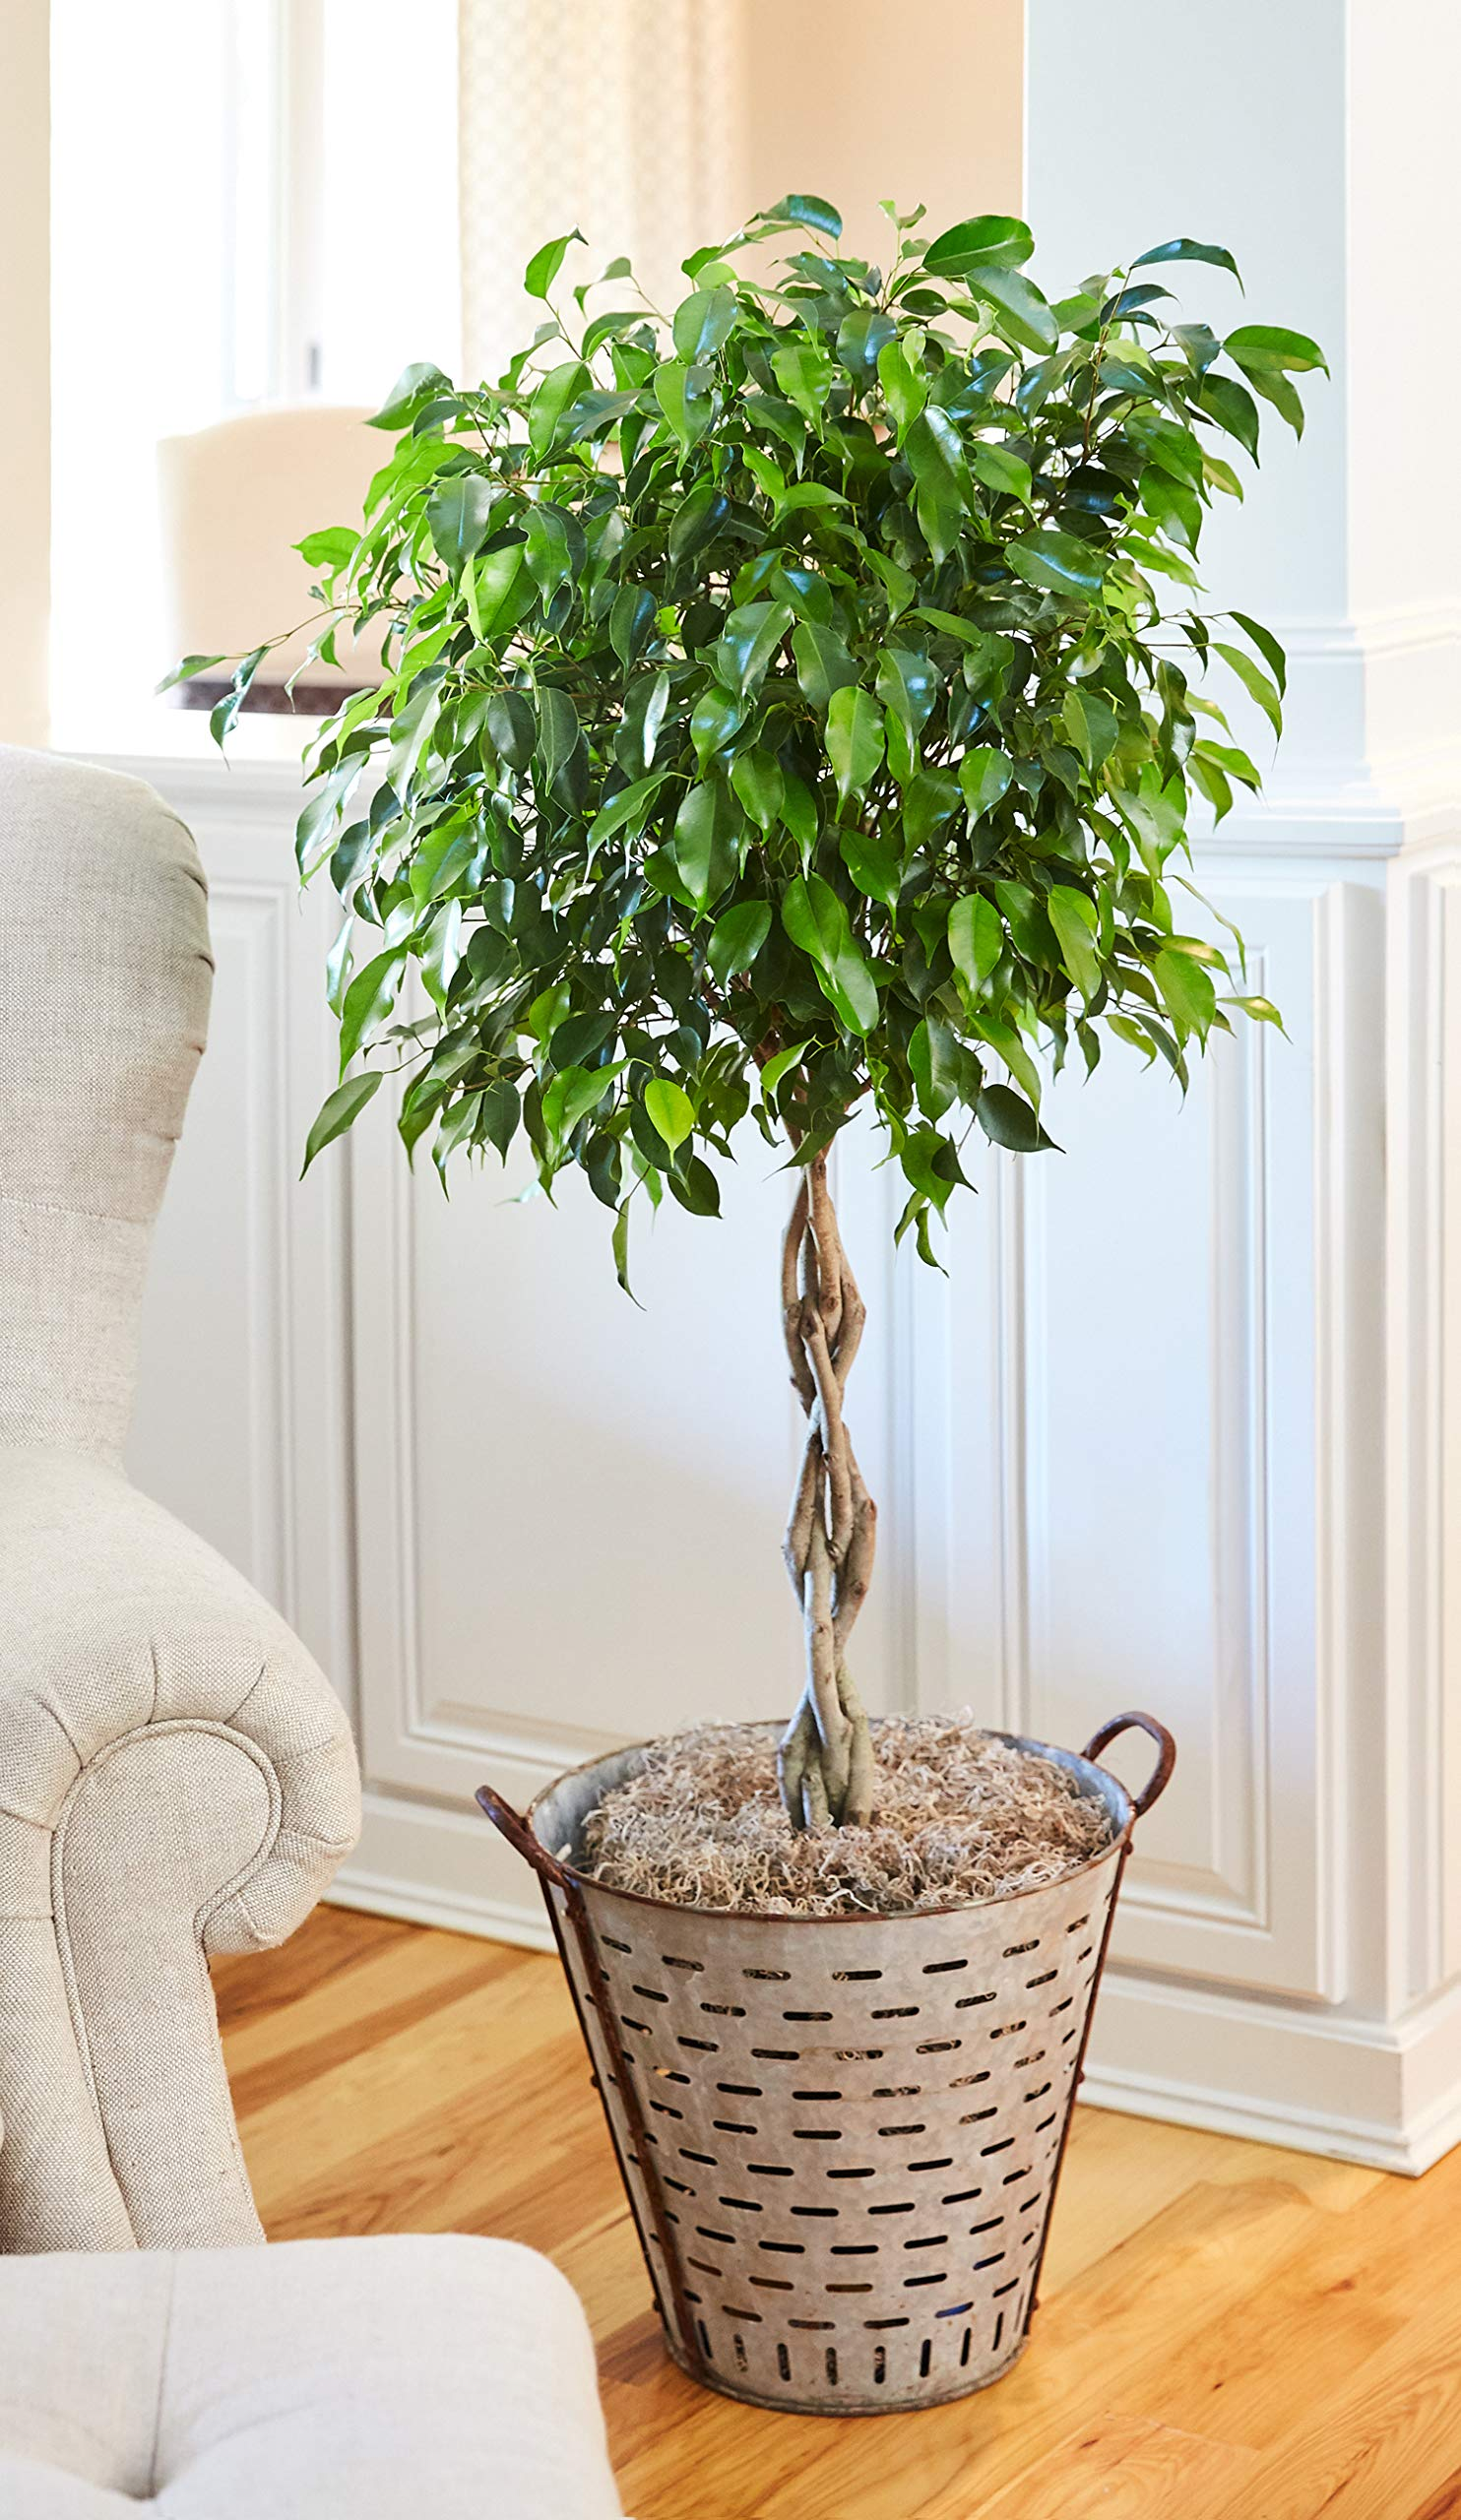 Benjamina Ficus Tree 2-3 ft. Tall - Unique Potted Tree, Perfect as a Live Patio Plants or Indoor Trees - Not Artificial Plants | No Shipping to AZ by Brighter Blooms (Image #2)